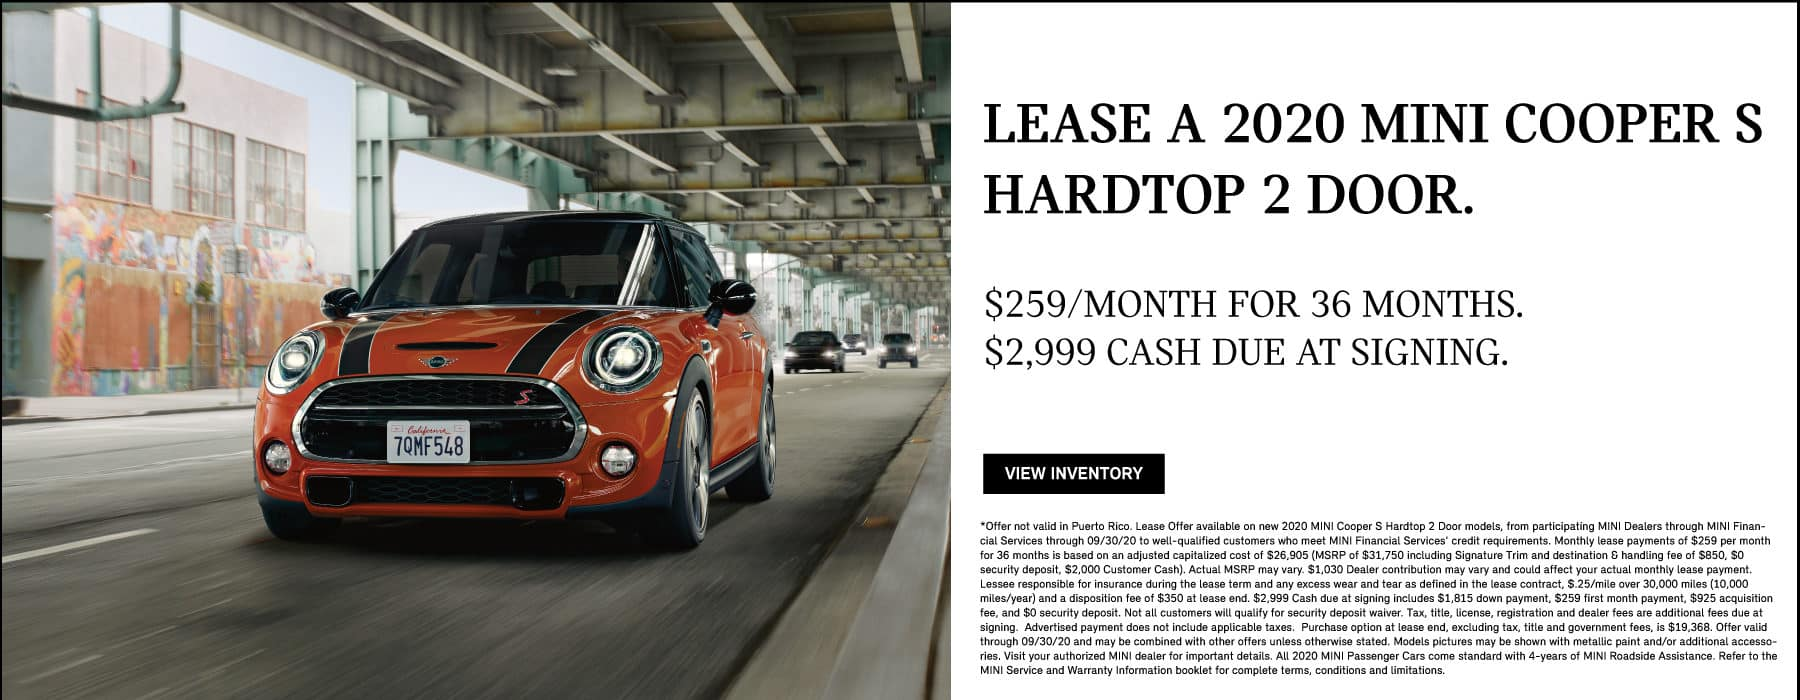 Lease a 2020 MINI Cooper S Hardtop 2 Door. $259/month for 36 months. $2,999 cash due at signing.